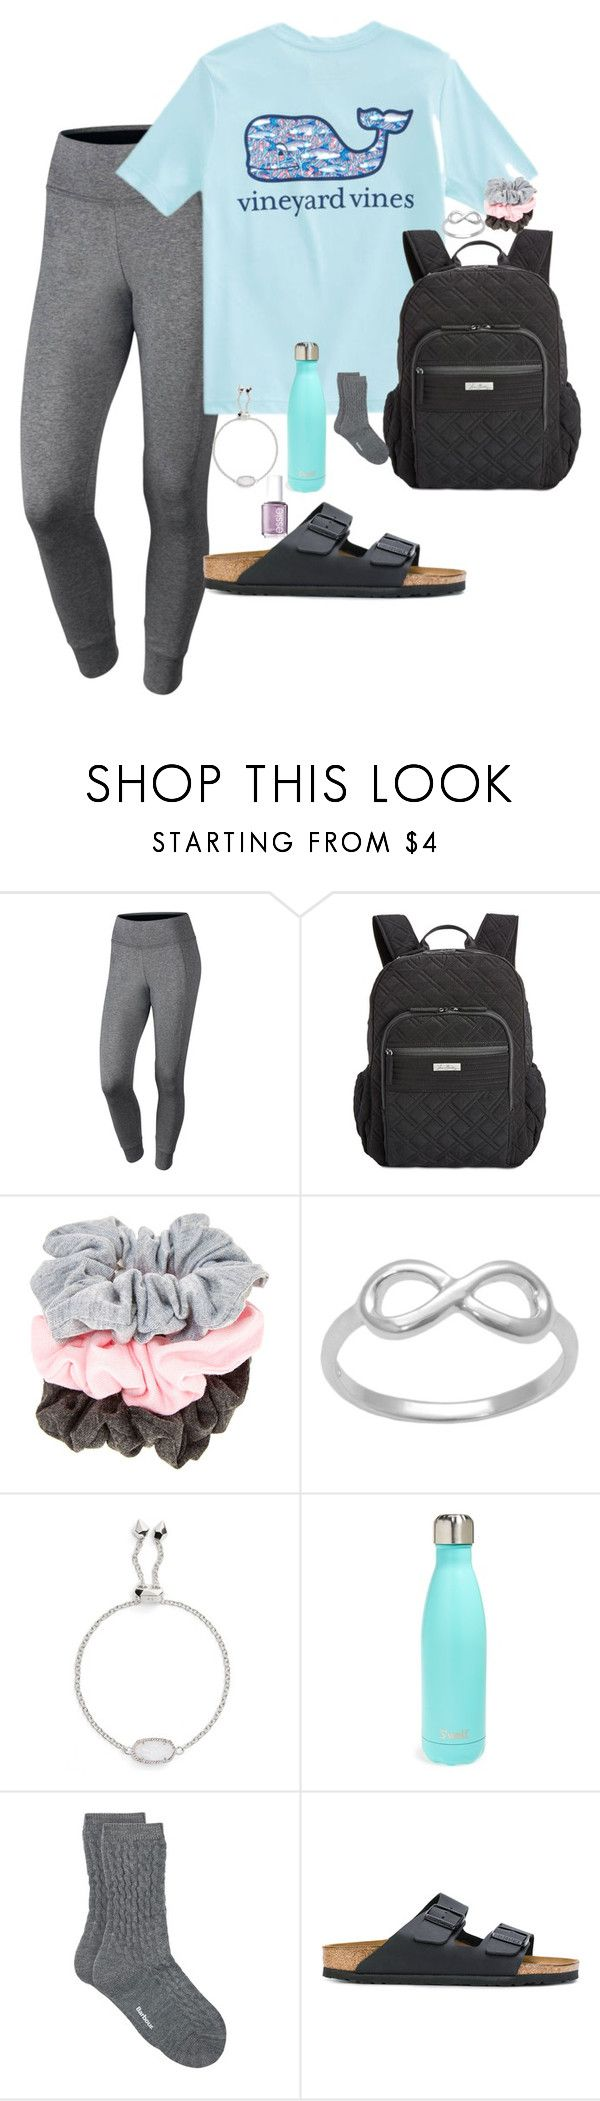 """school"" by nbrooke1009 on Polyvore featuring NIKE, Vineyard Vines, Vera Bradley, Kendra Scott, S'well, Barbour and Birkenstock"